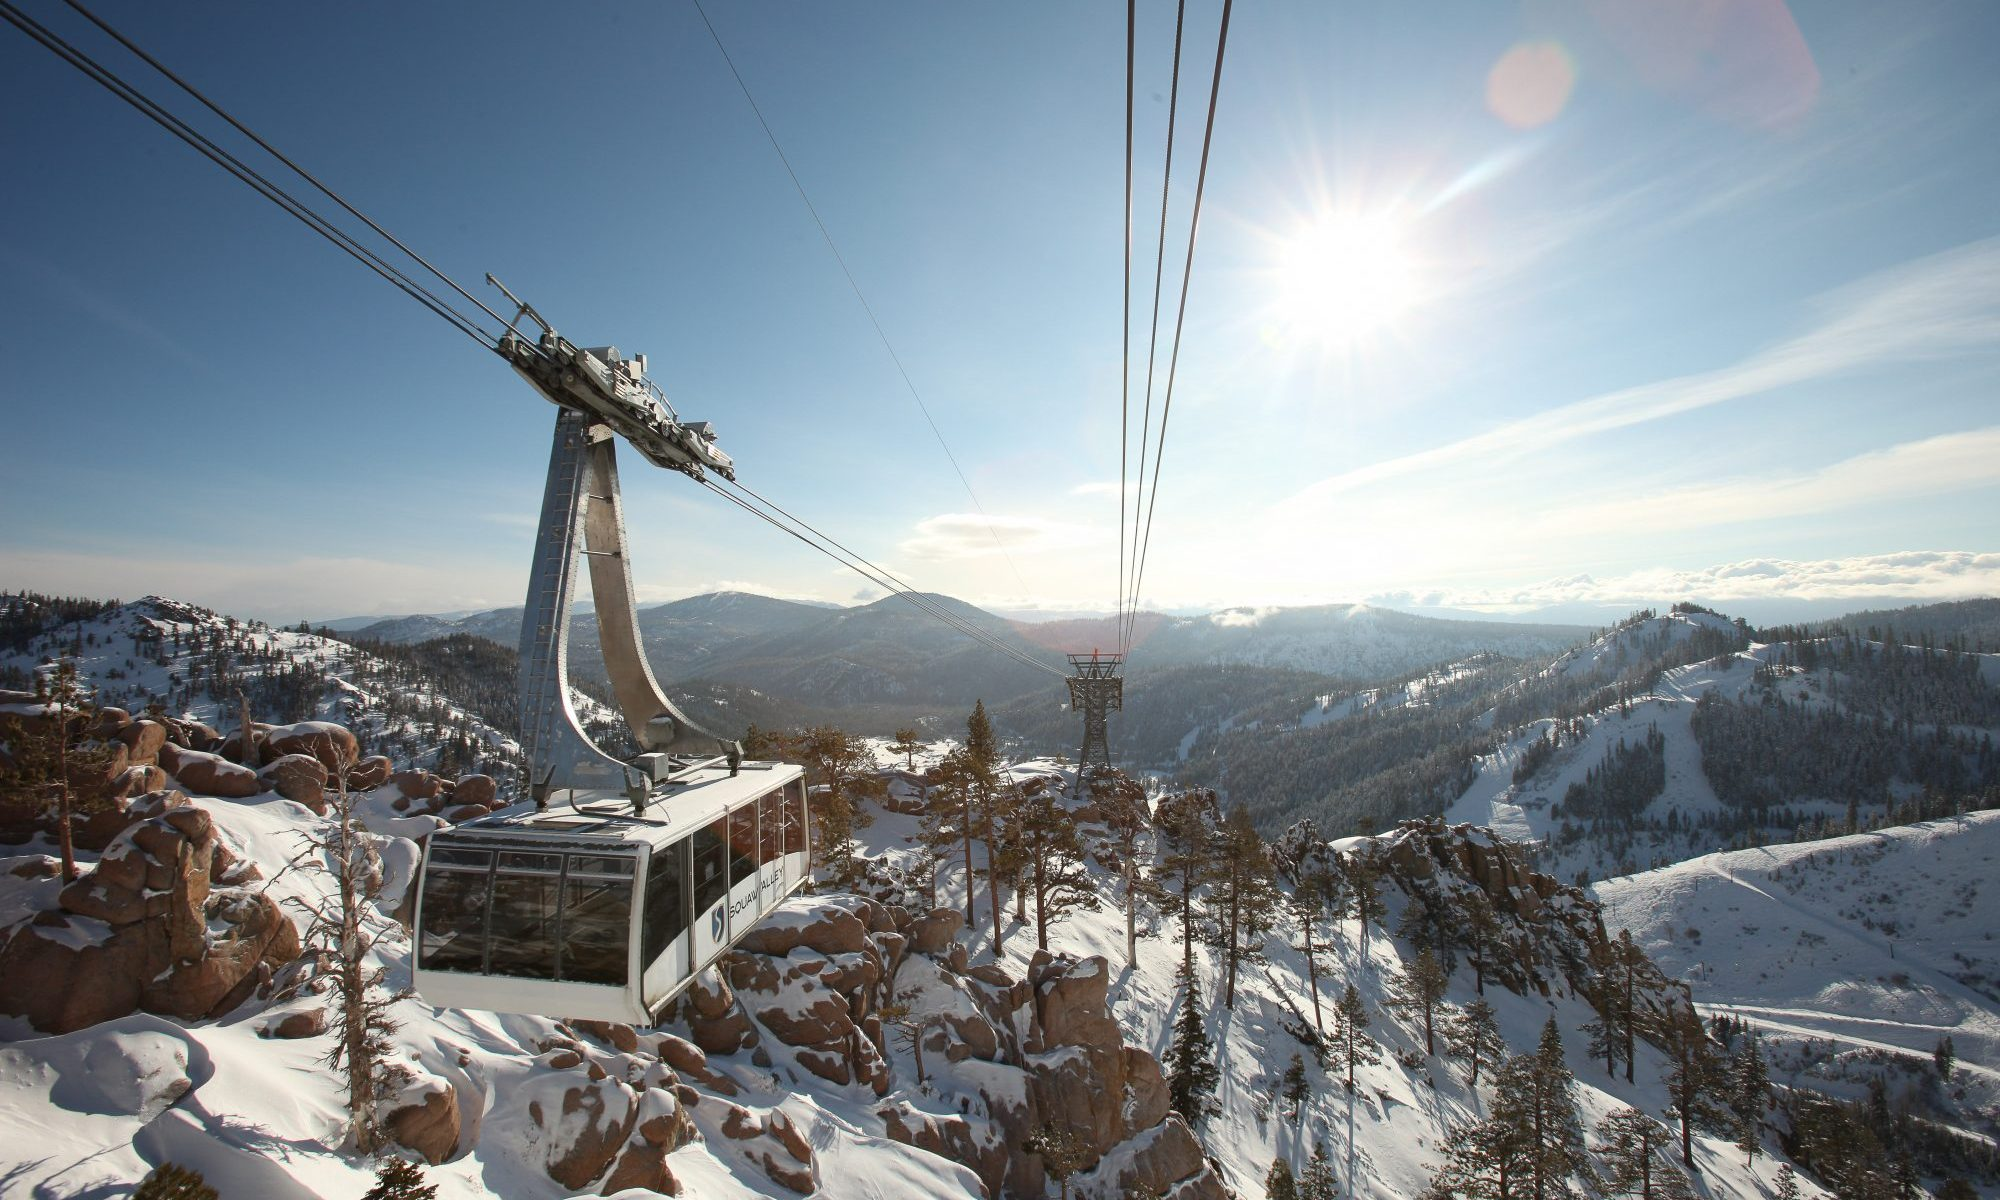 Scenics at Squaw Valley Mountain Resort in Olympic Valley, California.Alterra Mountain Company Announces $181 Million in Capital Improvements for the 2019/2020 Winter Season.